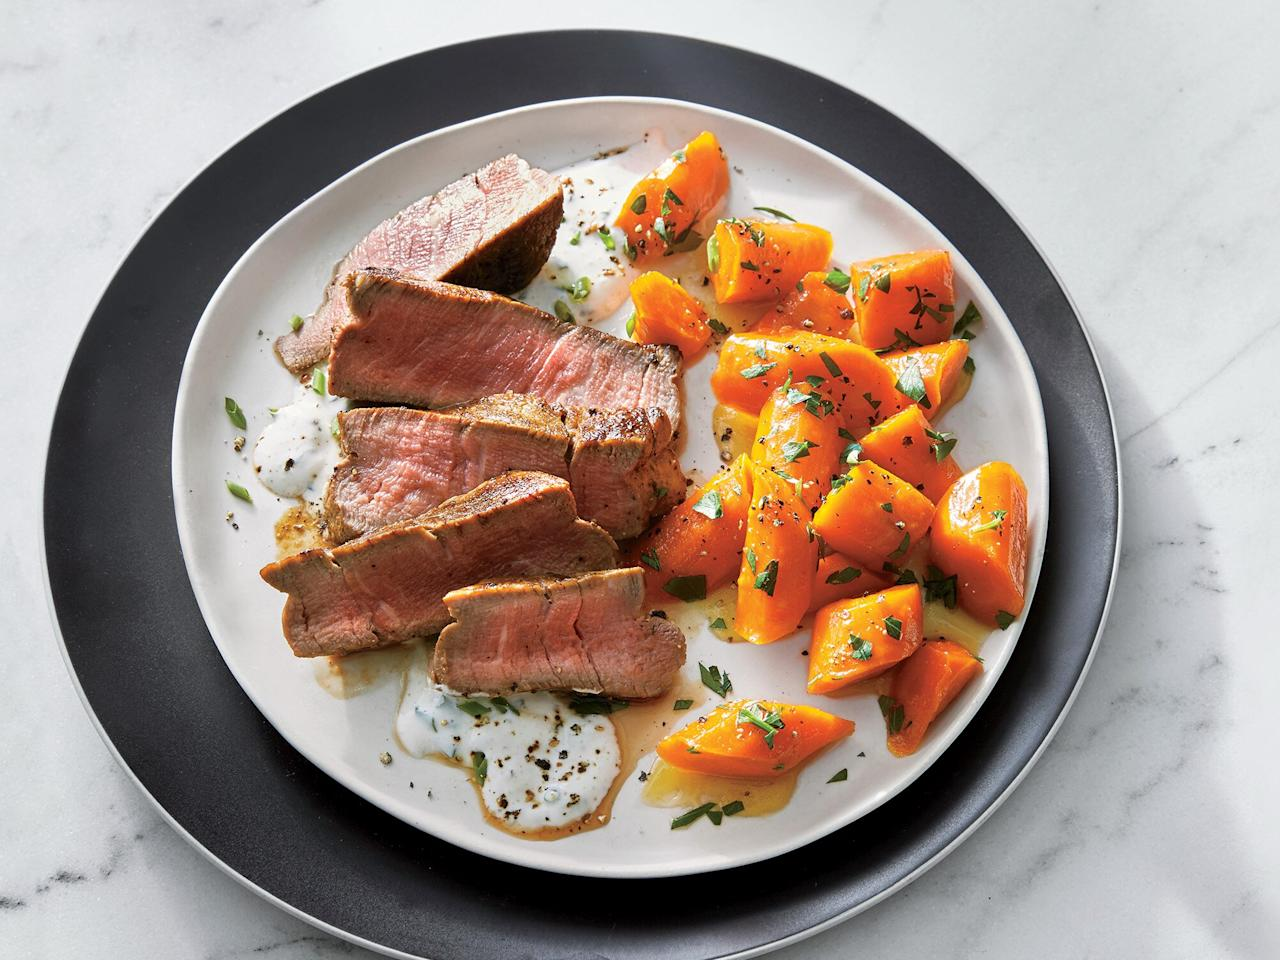 "<p>Beef tenderloin is worthy splurge when you want a special entrée in less time; the cut is so meltingly tender already that it takes just 8 minutes to cook. We use the same pan to cook and glaze the carrots for easy clean up. The horseradish sauce is the tangy, creamy, pungent element this dish needs.</p> <p> <a href=""https://www.cookinglight.com/recipes/beef-tenderloin-horseradish-cream-and-glazed-carrots"">View Recipe: Beef Tenderloin with Horseradish Cream and Glazed Carrots</a></p>"